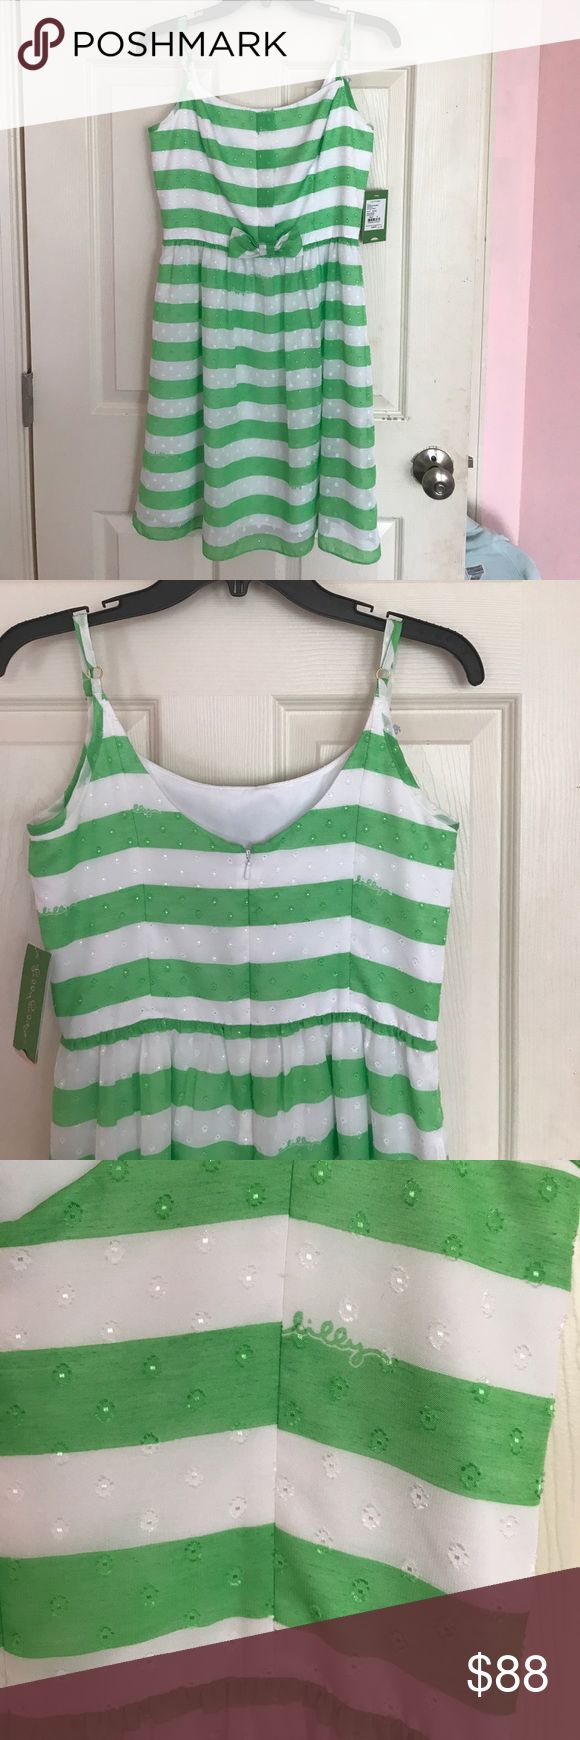 LILLY PULITZER green awning stripe dress 6 LILLY PULITZER dress- beautiful green and white striped with sweet bow in the front. NWT!! Retails for $198 but I got on sale for $138. I never got a chance to wear :-( Hoping to find a new loving home!! Armpit to armpit 16.5 length 29 Feel free to ask questions. No stains, tears holes or pulls. Lilly Pulitzer Dresses